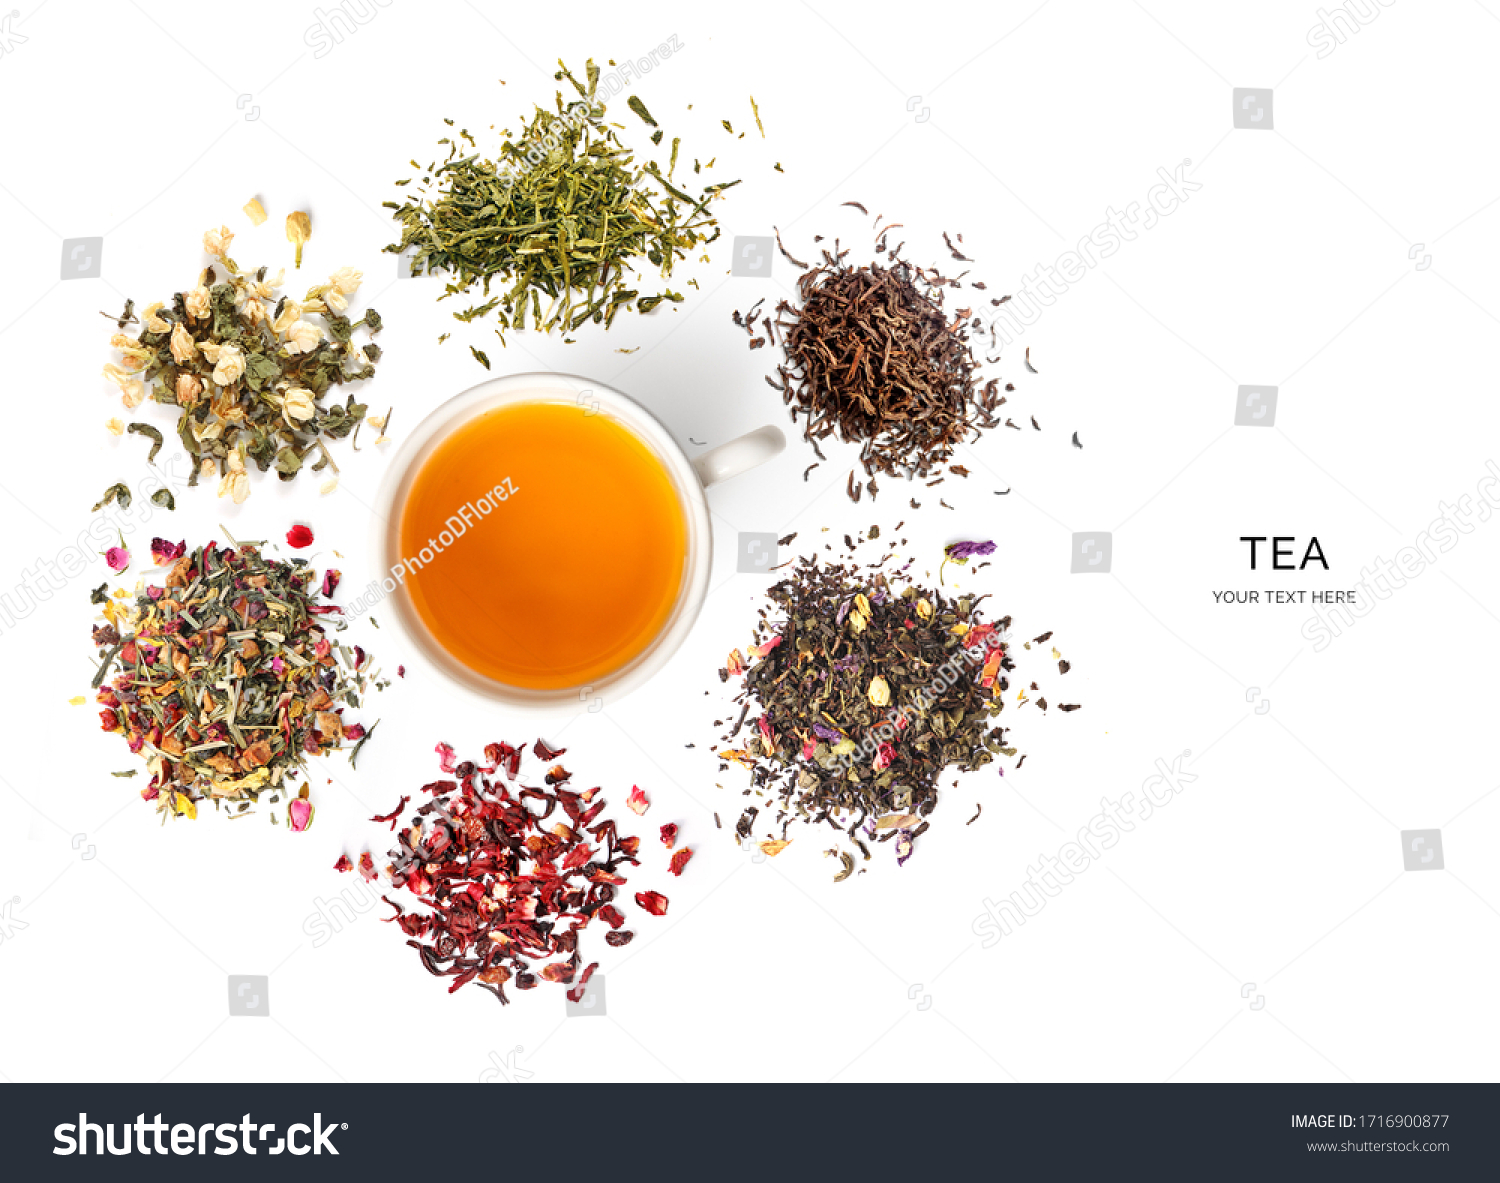 Creative layout made of cup of tea, green tea, black tea, fruit and herbal tea, sencha, ginger on white background.Flat lay. Food concept. #1716900877